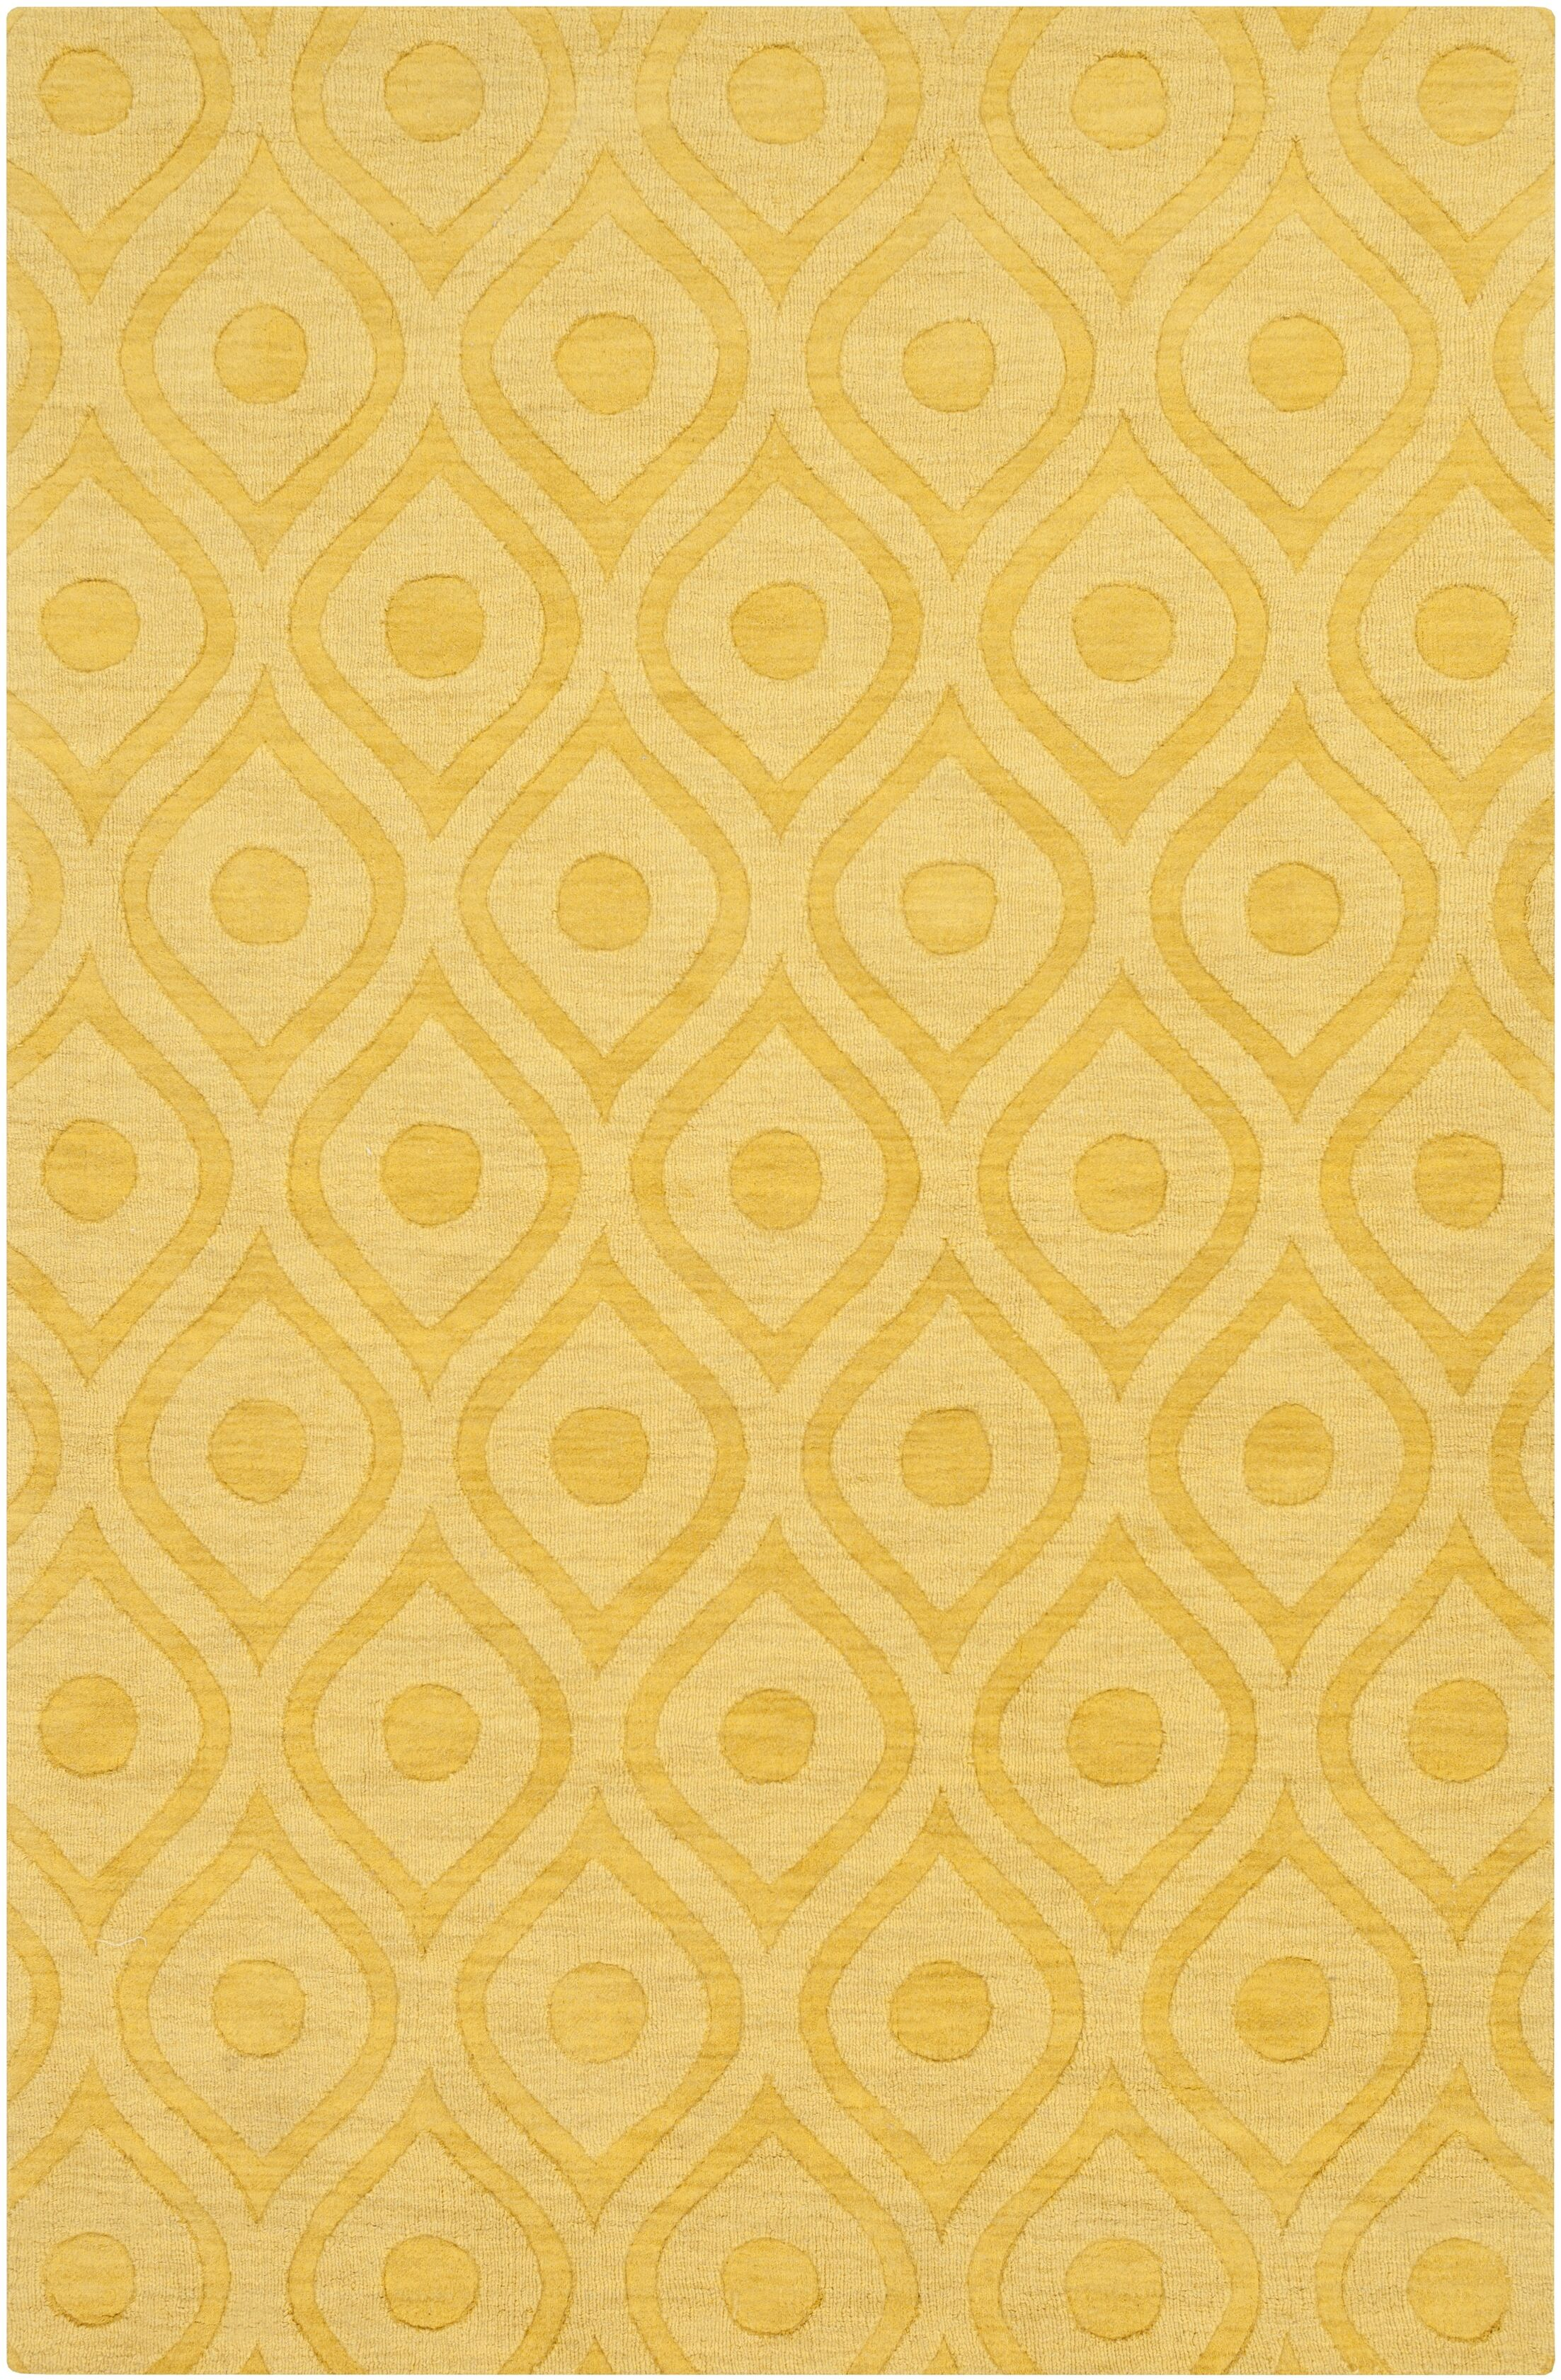 Castro Hand Woven Wool Yellow Area Rug Rug Size: Rectangle 4' x 6'